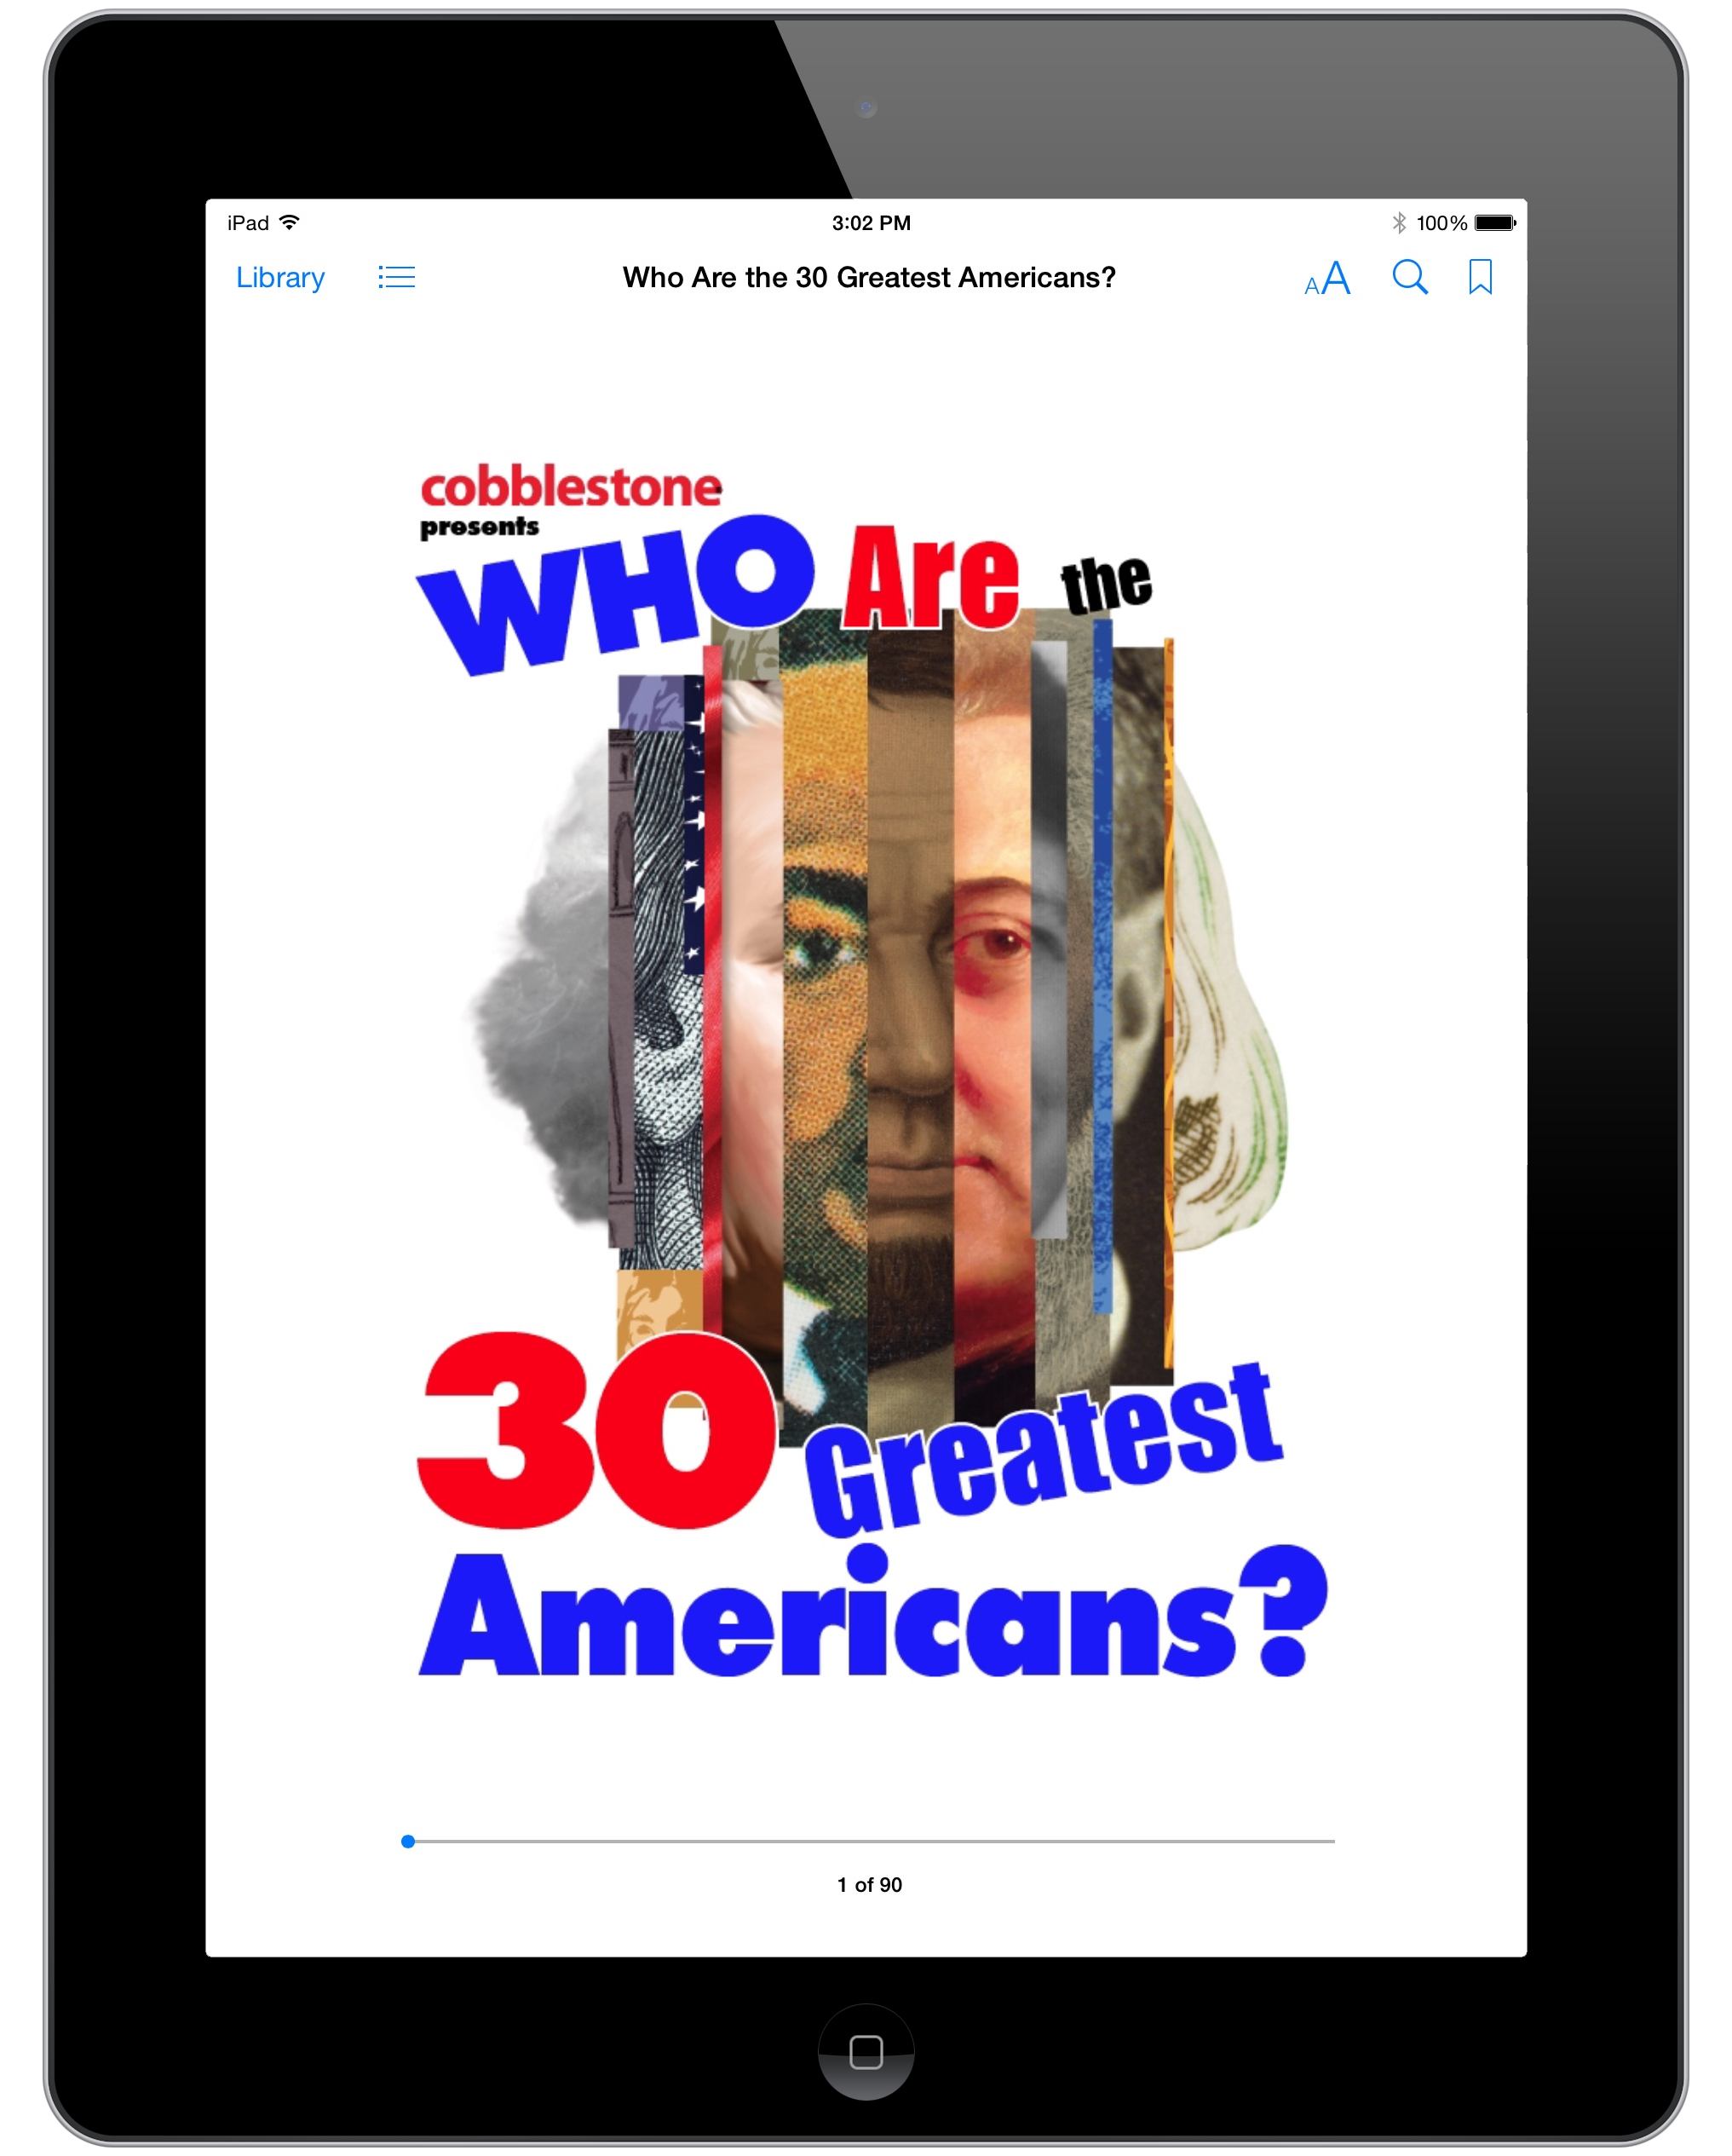 Who Are the 30 Greatest Americans?